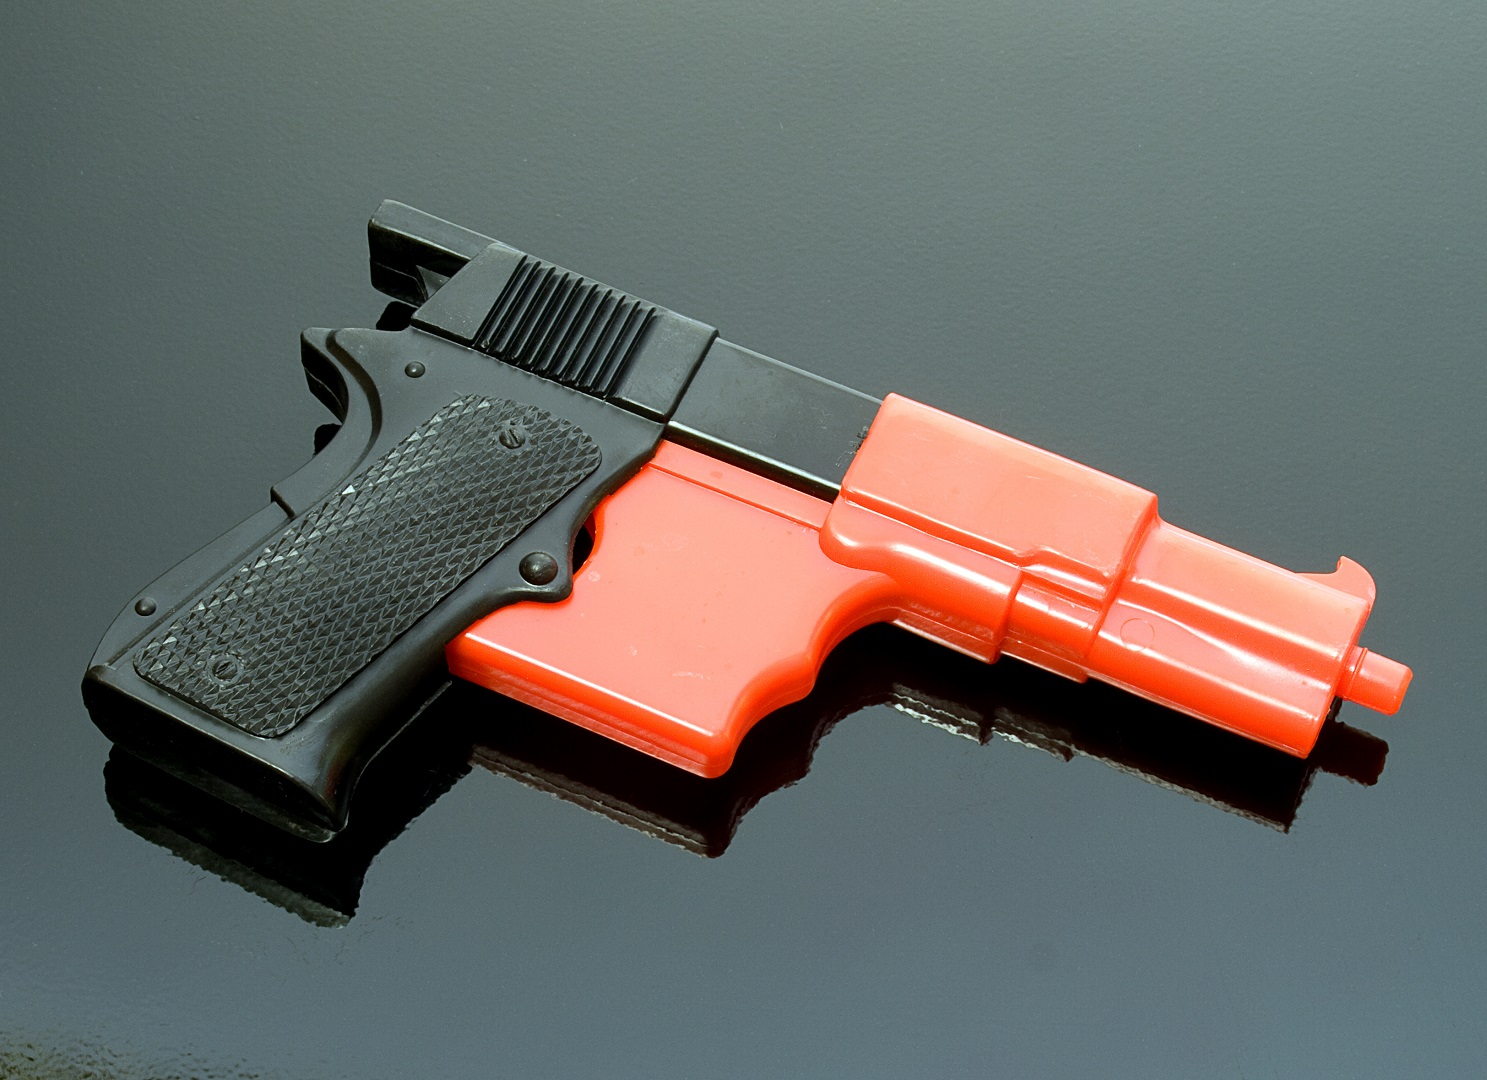 Black and Orange Toy Gun on Shiny Black Surface